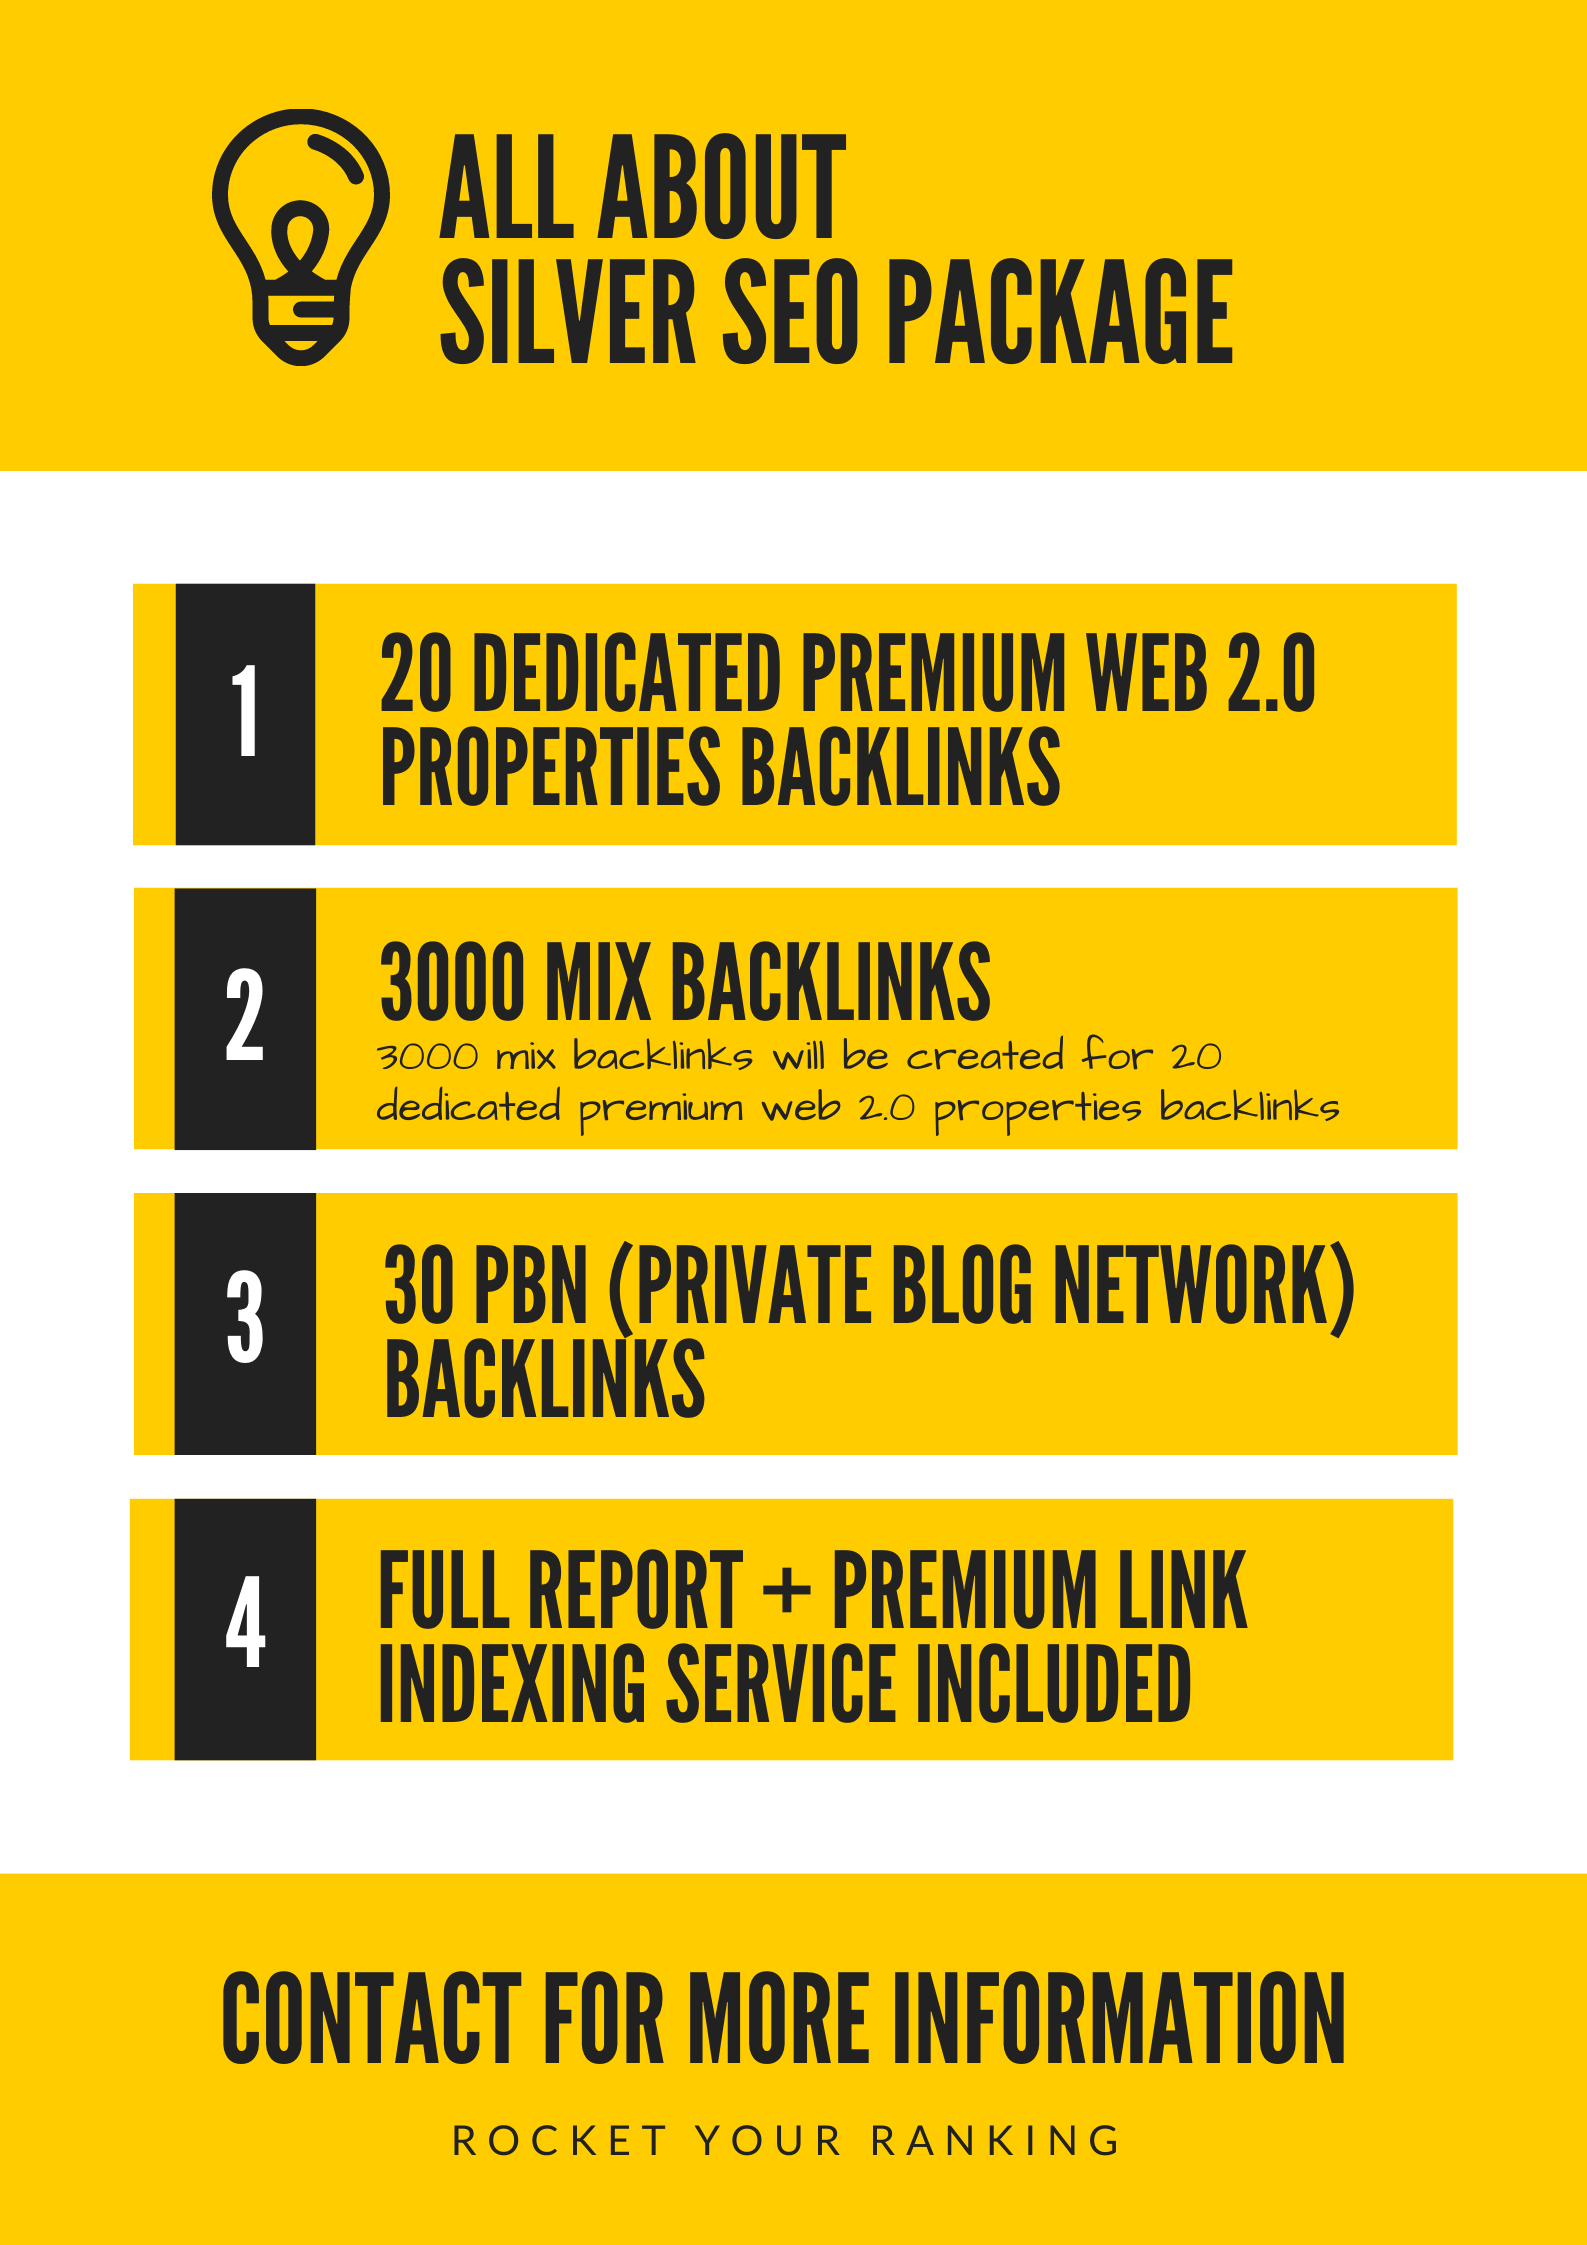 Silver SEO Package - Rank Dominator - Boost Your RANKING